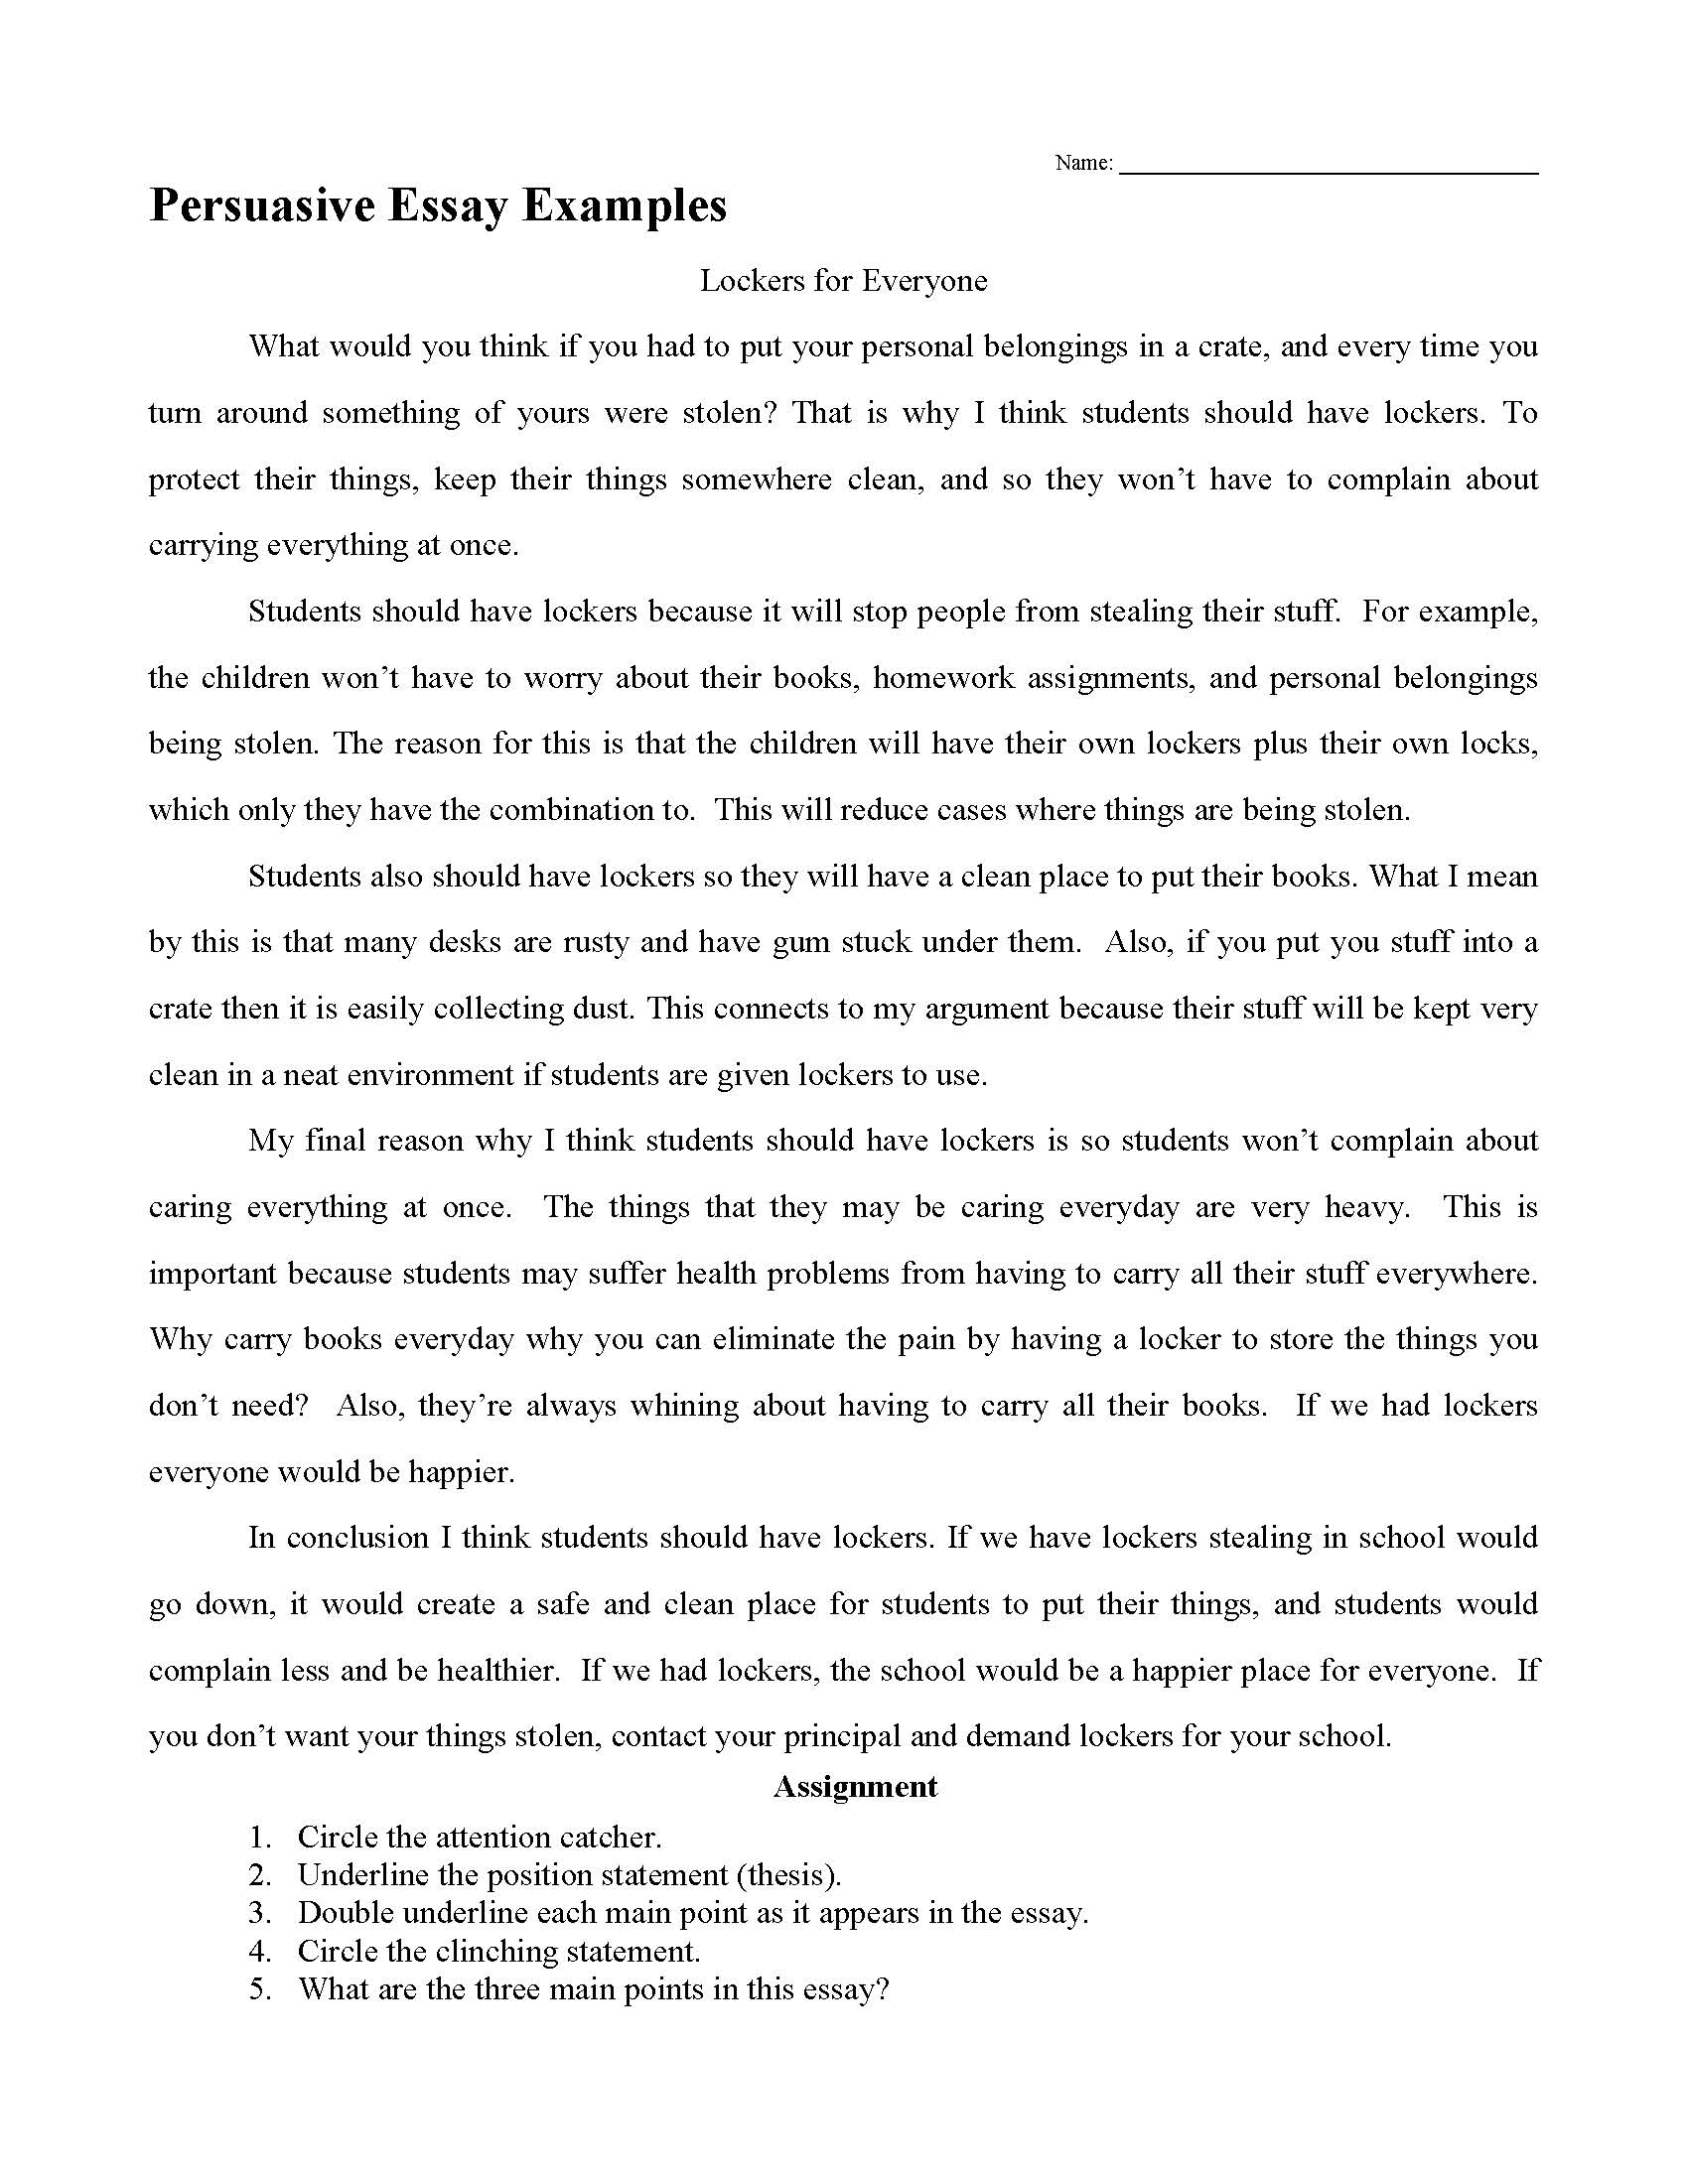 Persuasive Essay - Writing Guide, Outline and Topics